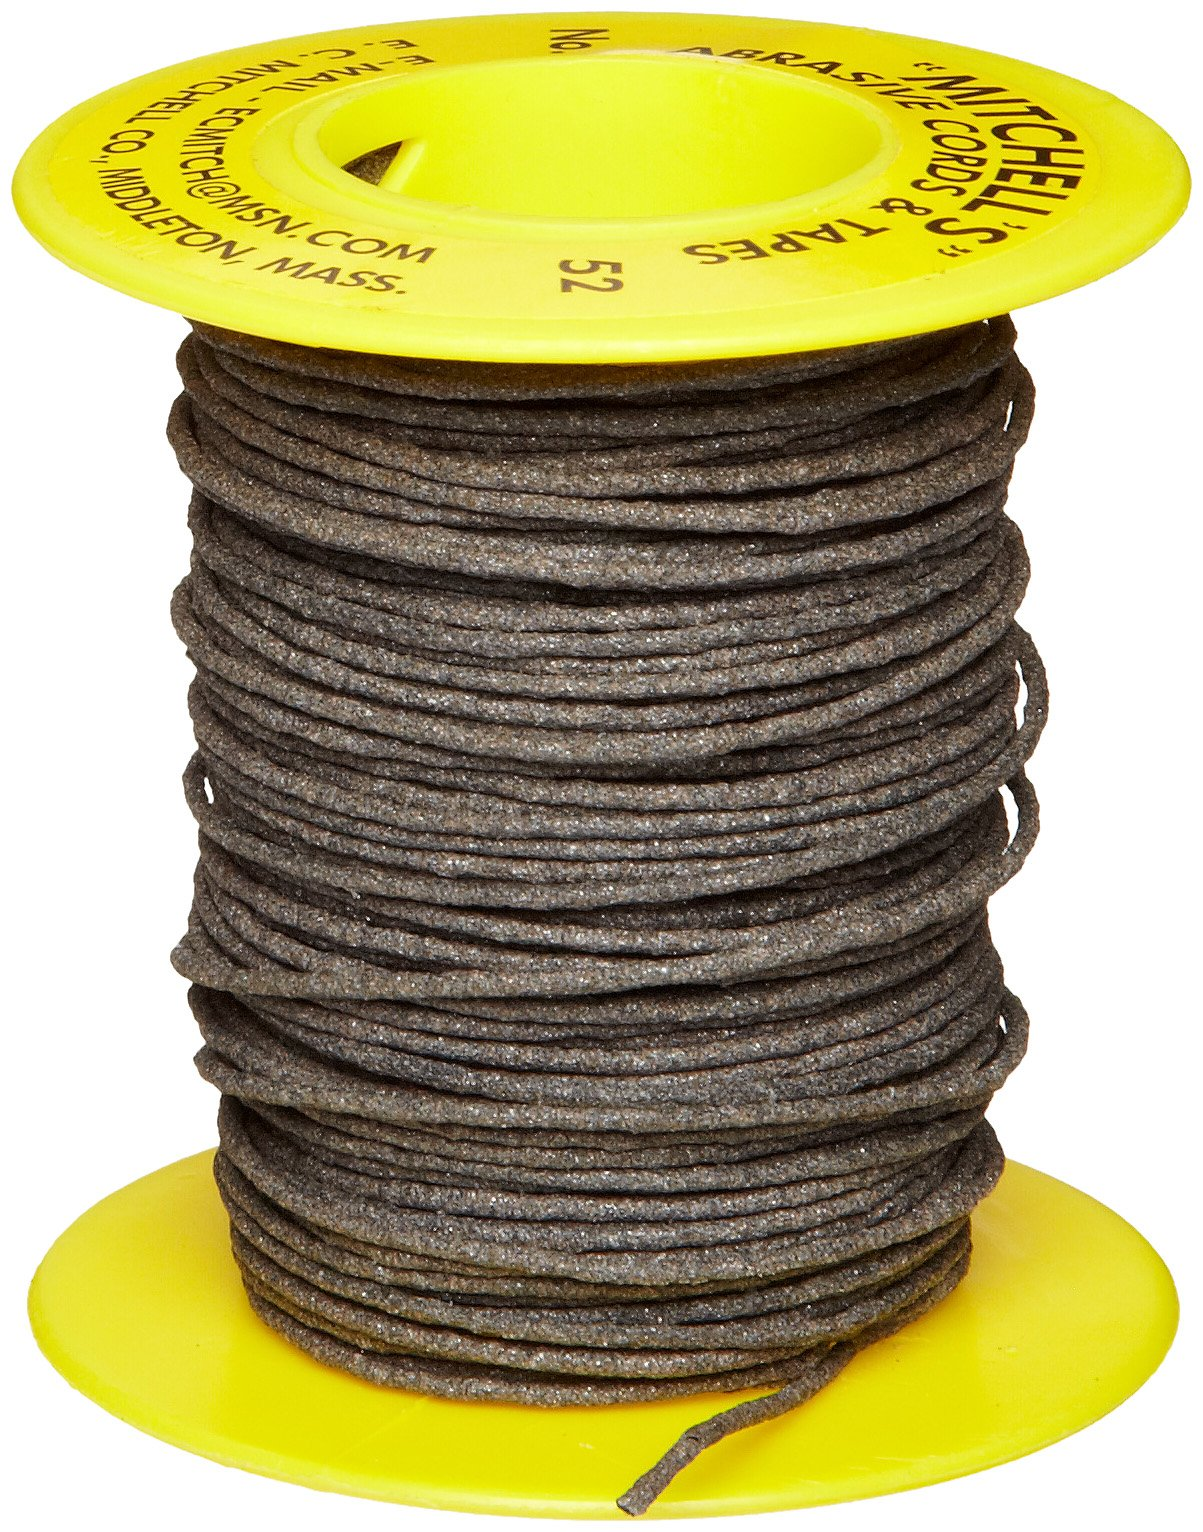 Mitchell Abrasives 52 Round Abrasive Cord, Aluminum Oxide 150 Grit .055'' Diameter x 50 Feet by Mitchell Abrasives